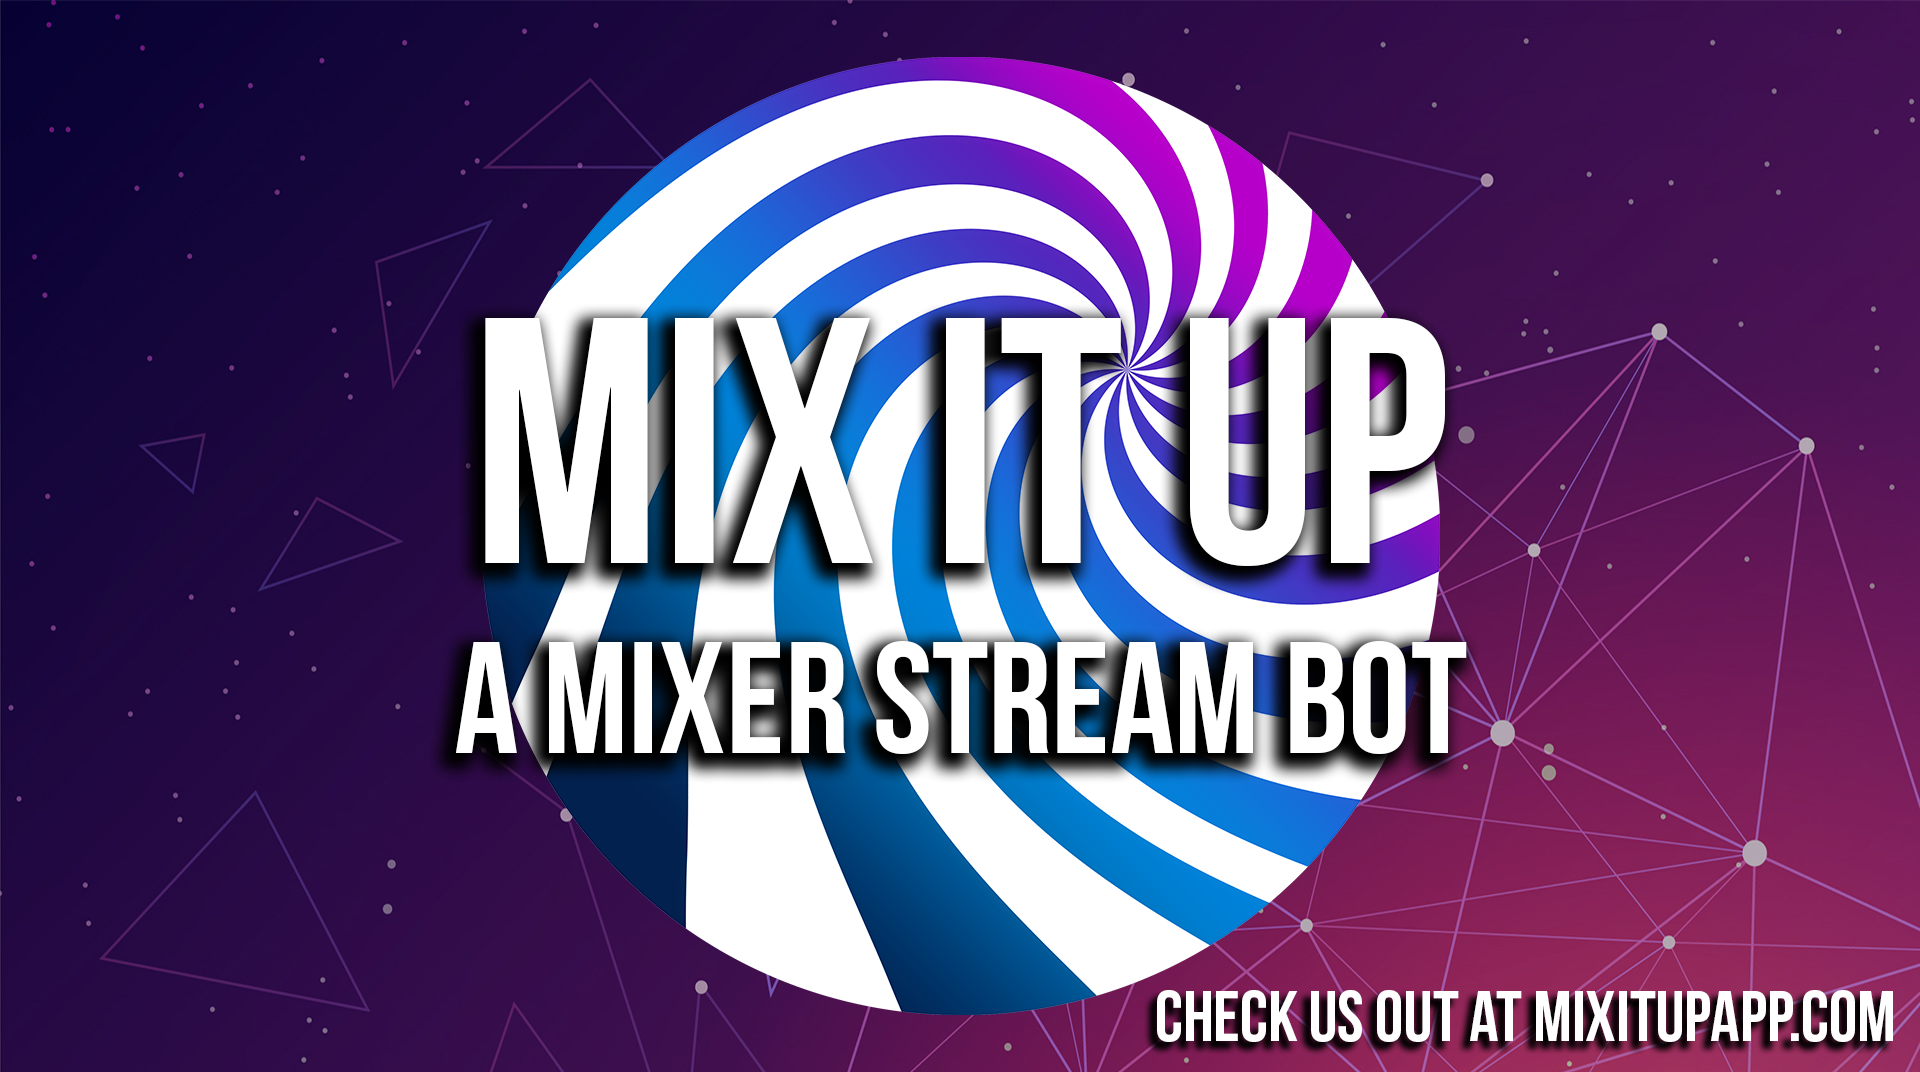 Mix It Up - A Full-Featured Mixer Streaming Bot